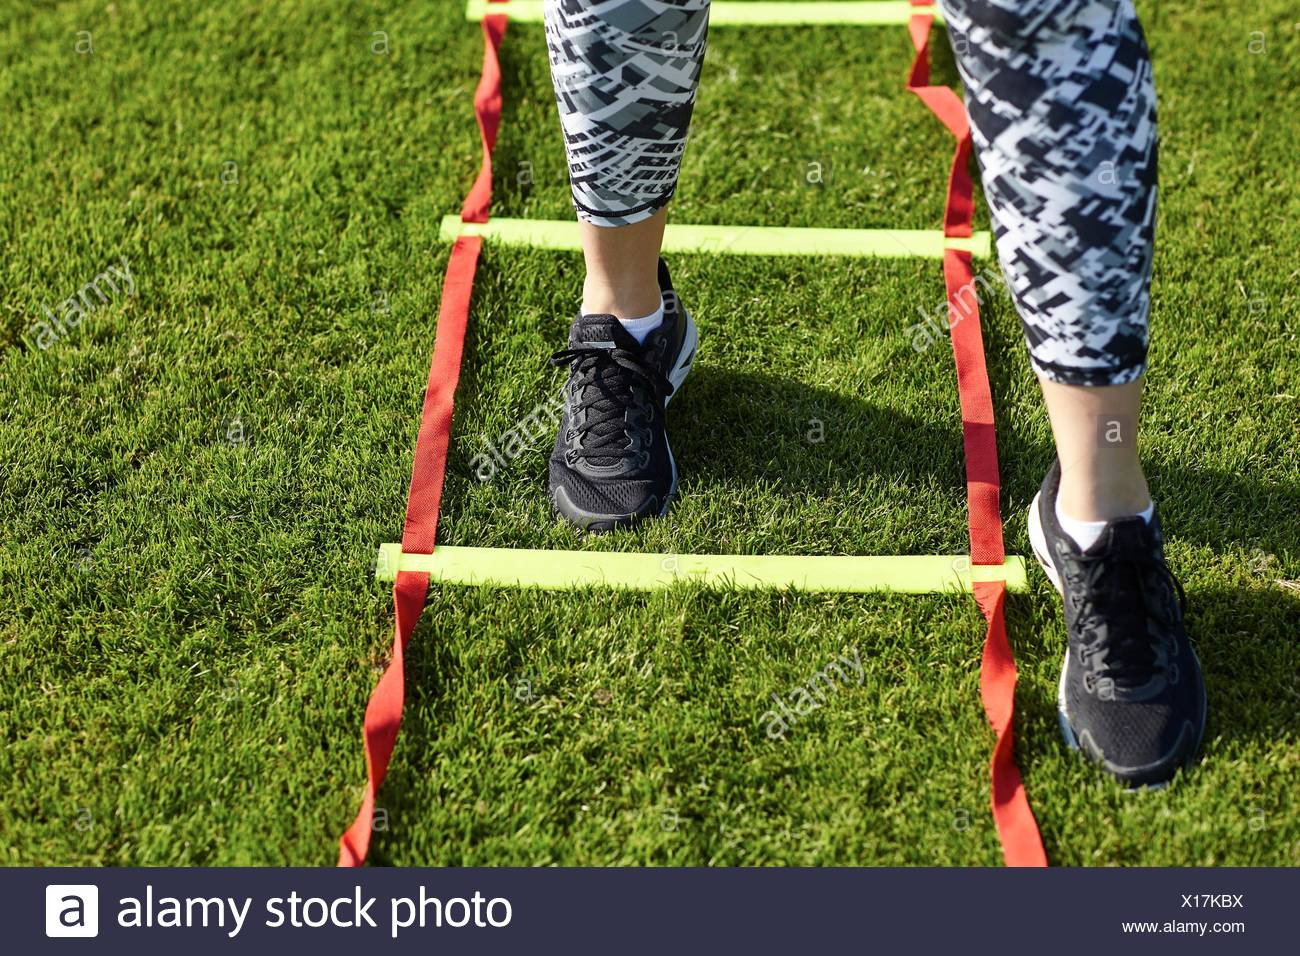 Feet of young woman training on agility ladder - Stock Image